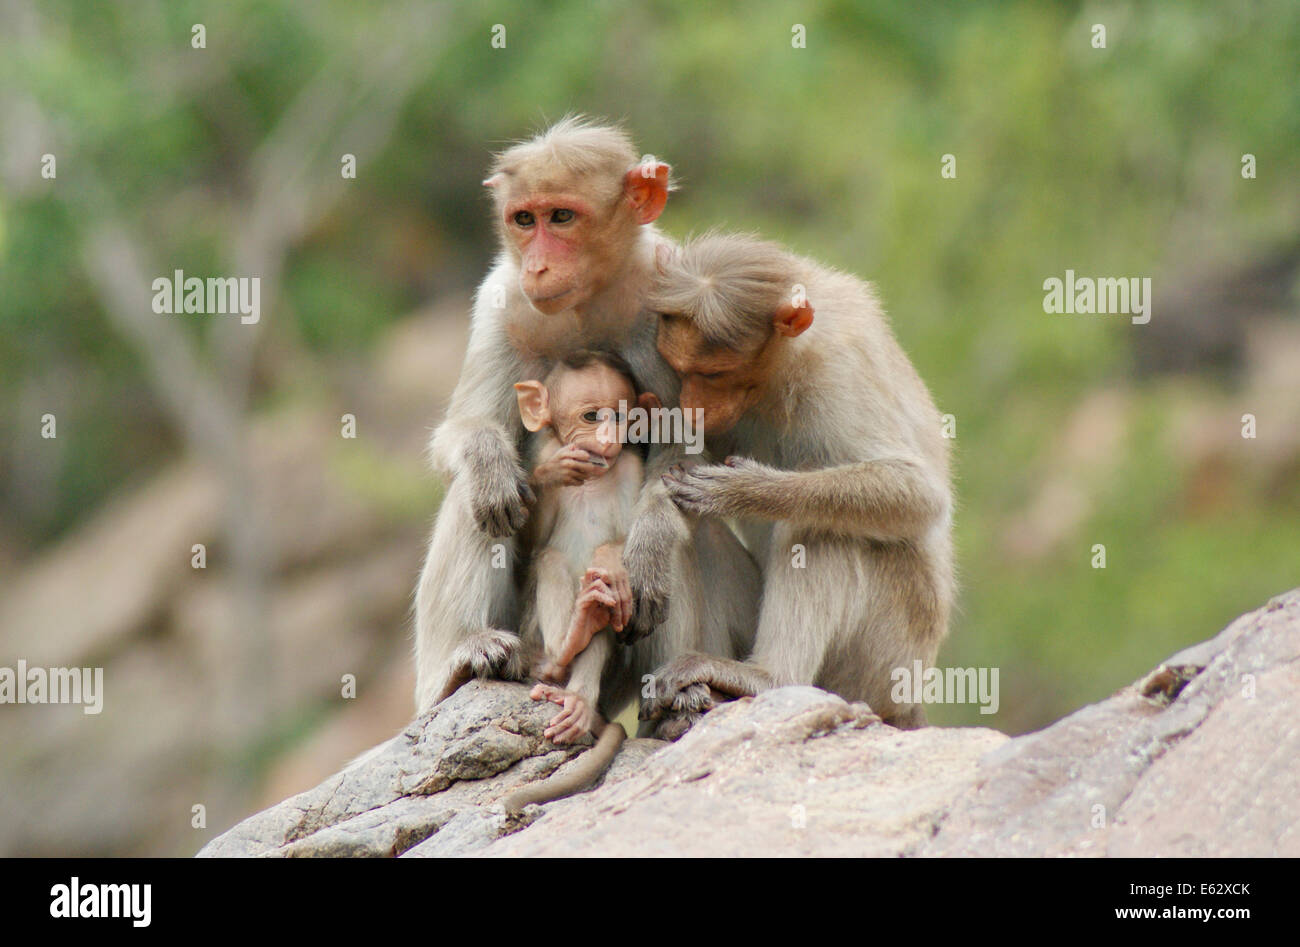 Monkeys family with baby Macaque Monkey Love and caring India Wildlife - Stock Image